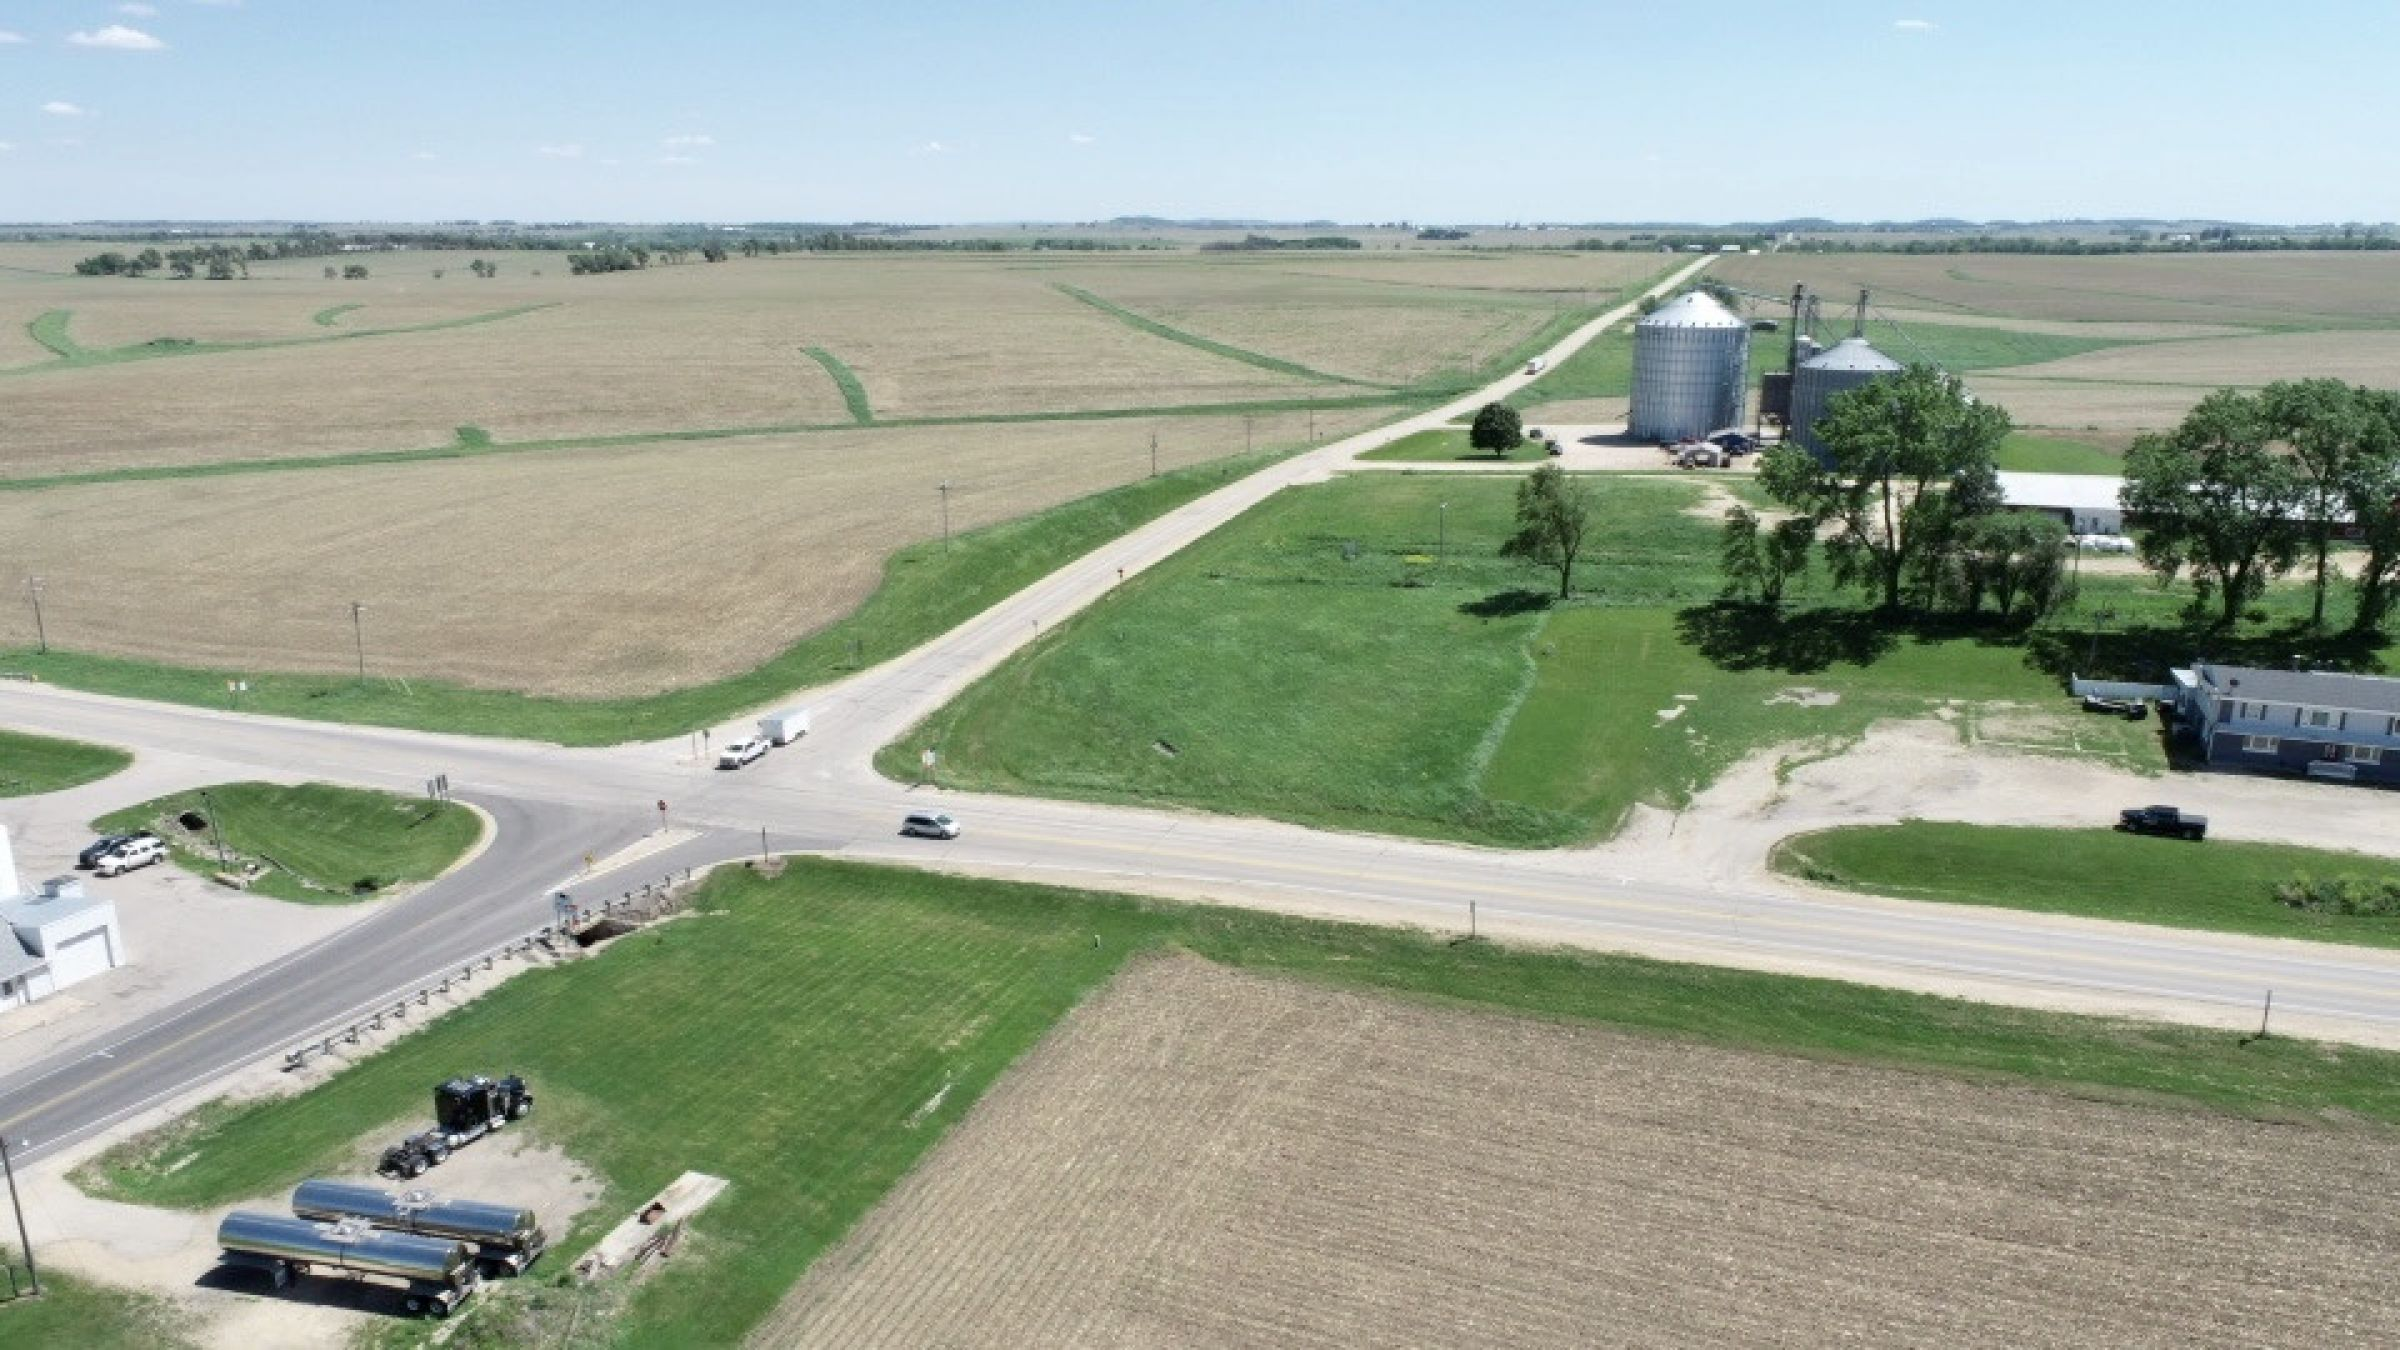 land-commercial-lafayette-county-wisconsin-1-acres-listing-number-15560-2-2021-05-28-185522.jpg